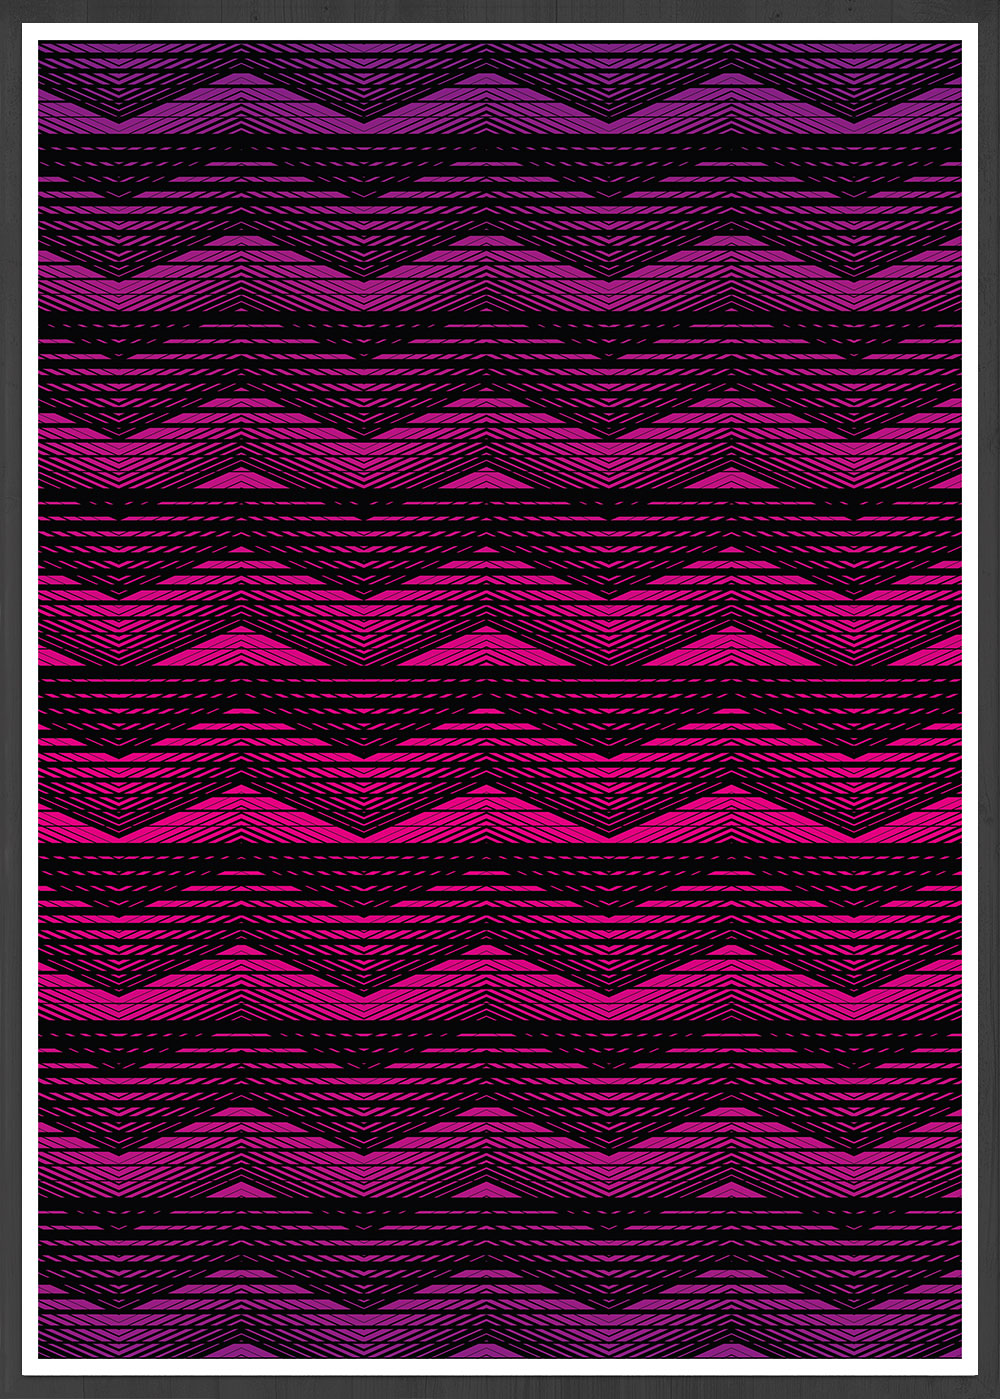 Retro Pink Geometric Art Print in a frame